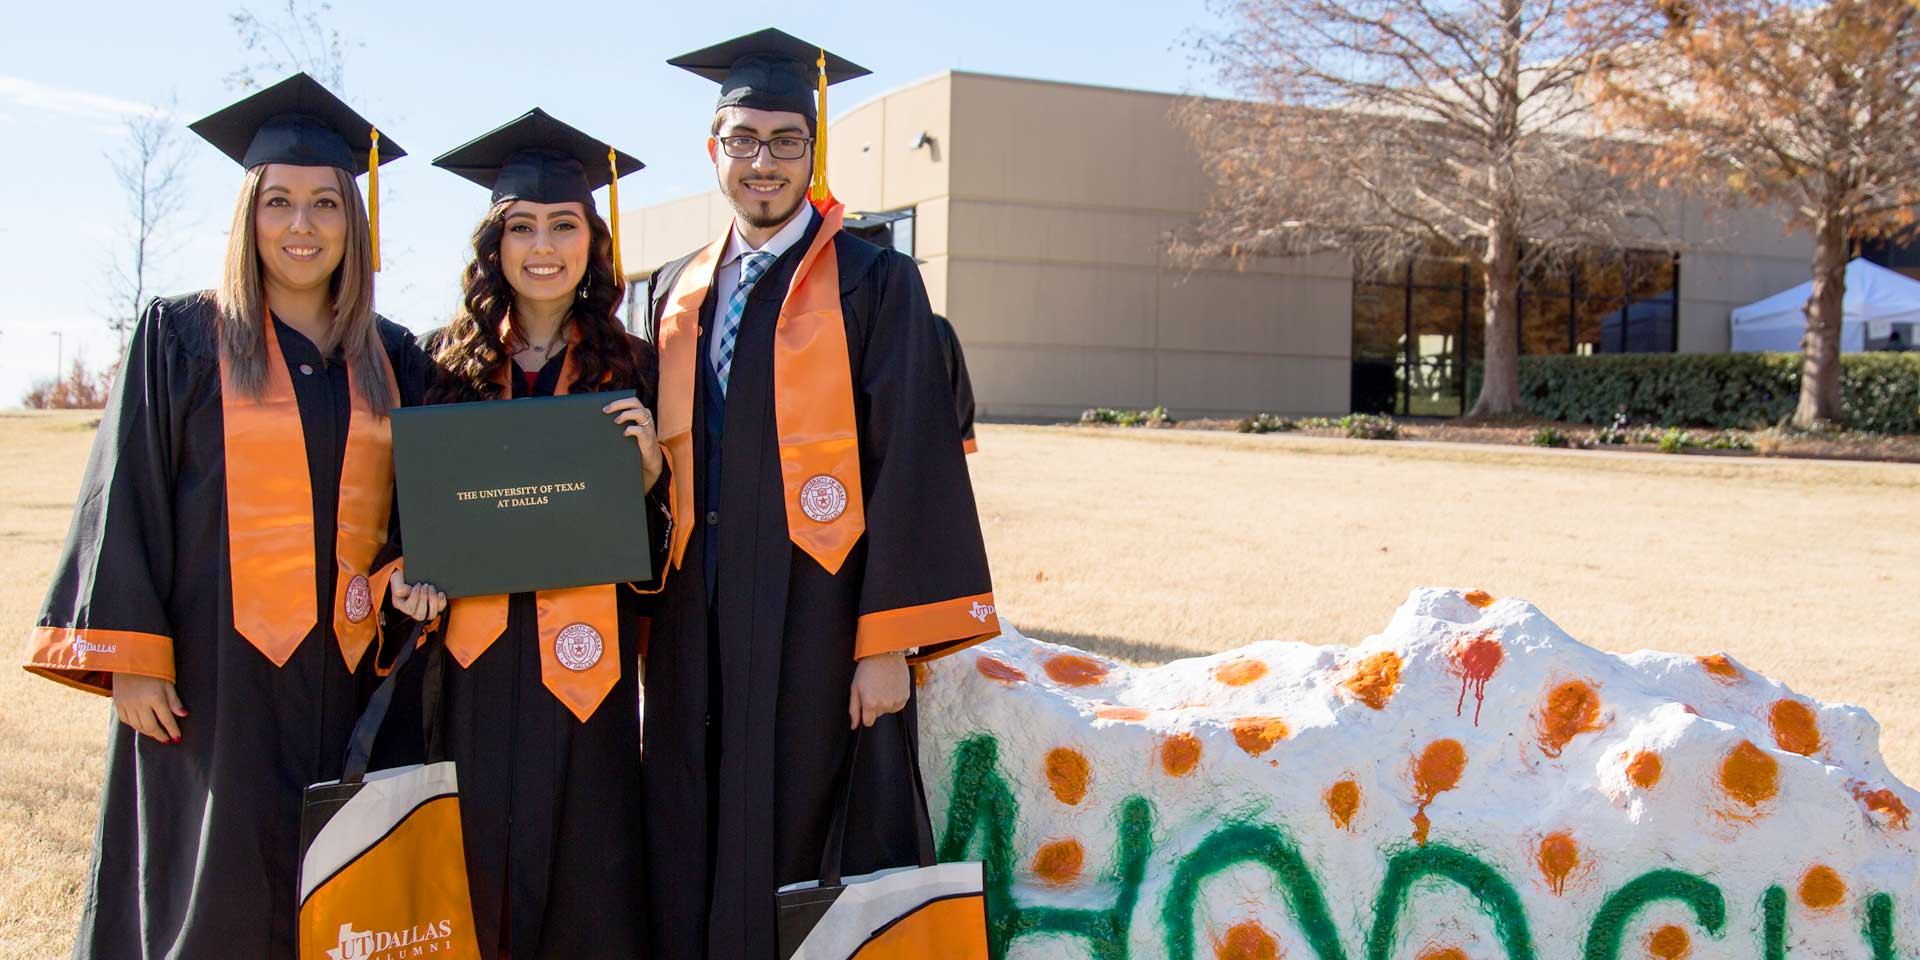 Bachelor's in supply chain management graduate Alfredo Beltran with two friends who graduated with bachelor's degrees at the Jindal School, UT Dallas